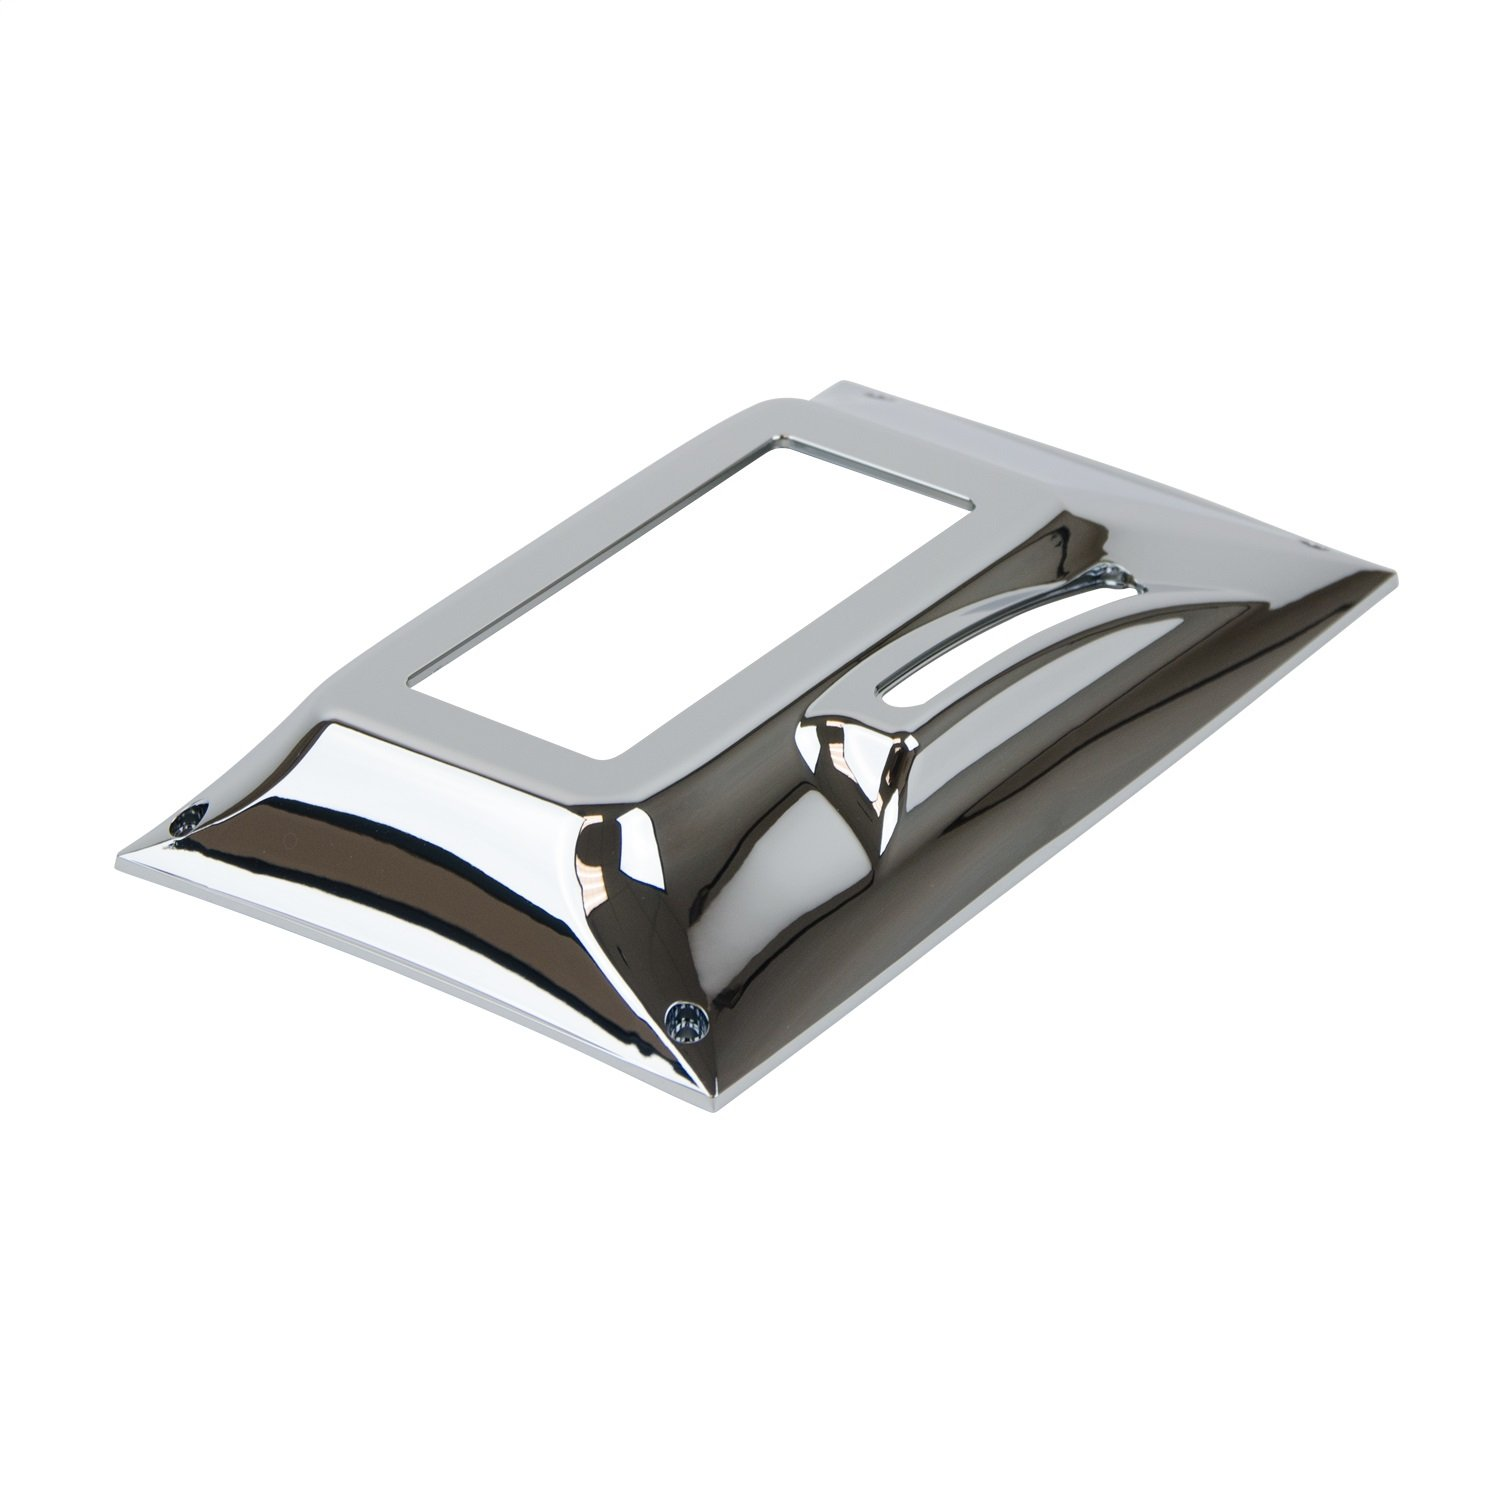 B/&M 81027 Chrome Plastic Cover for Quicksilver Shifter